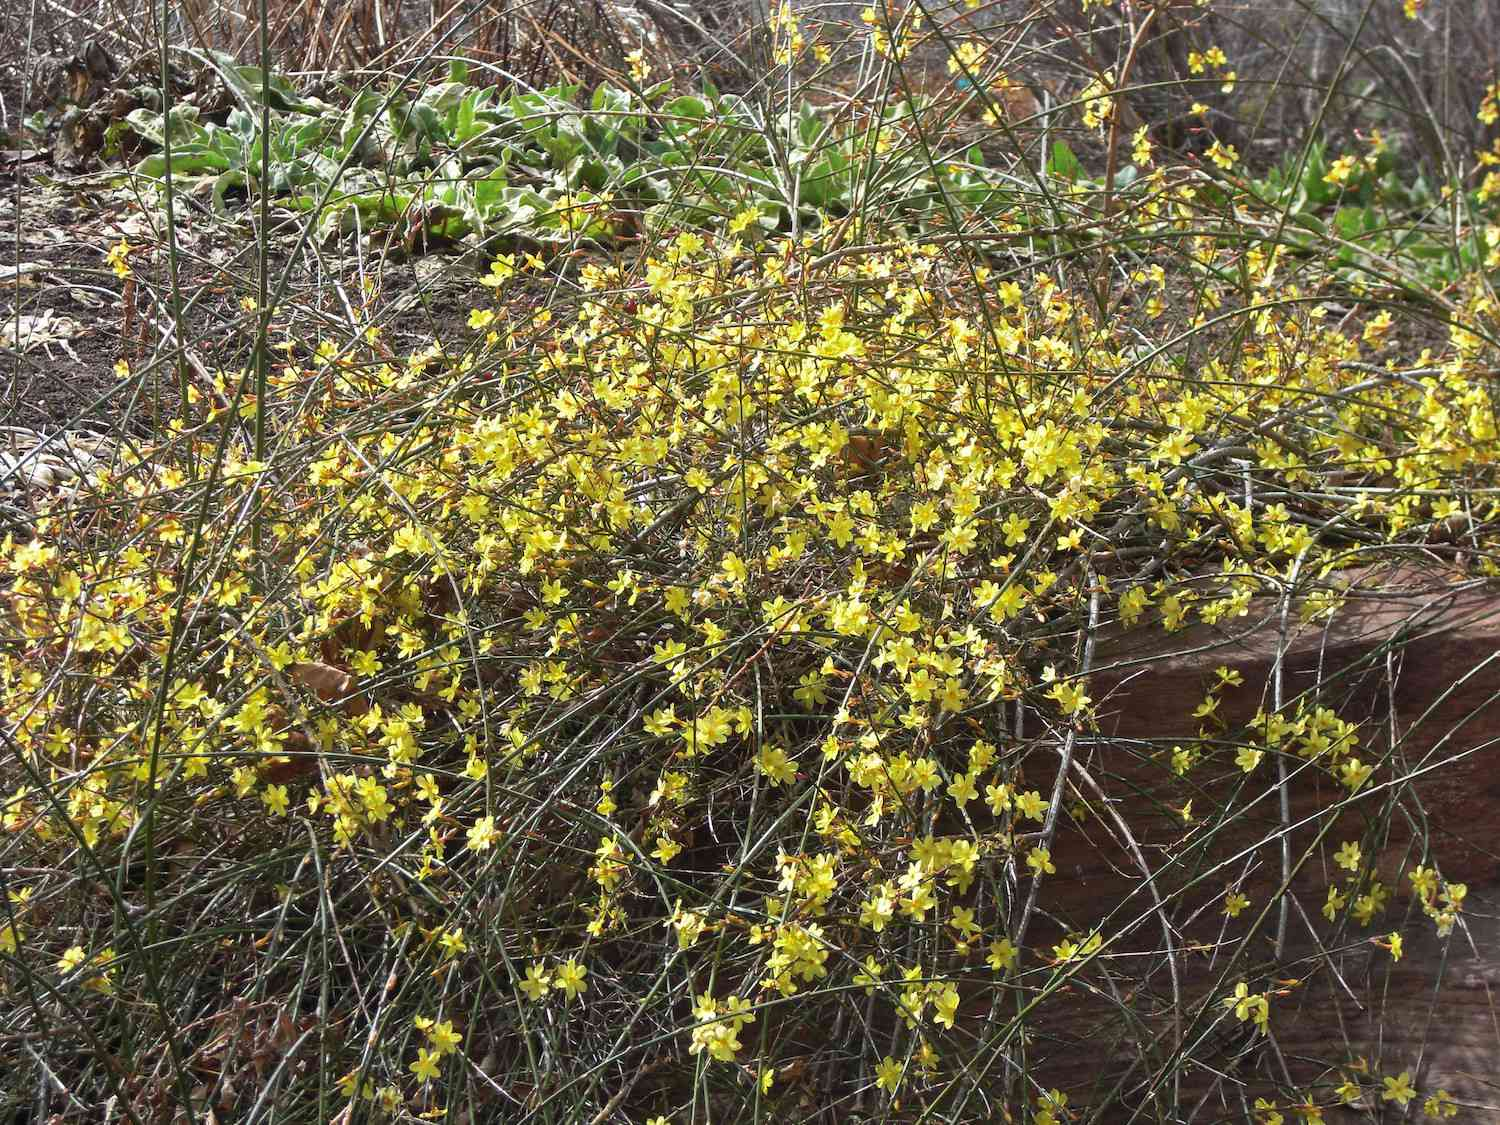 Hundreds of small yellow flowers grow amidst the thin, tangled mass of woody shrubbery of winter jasmine